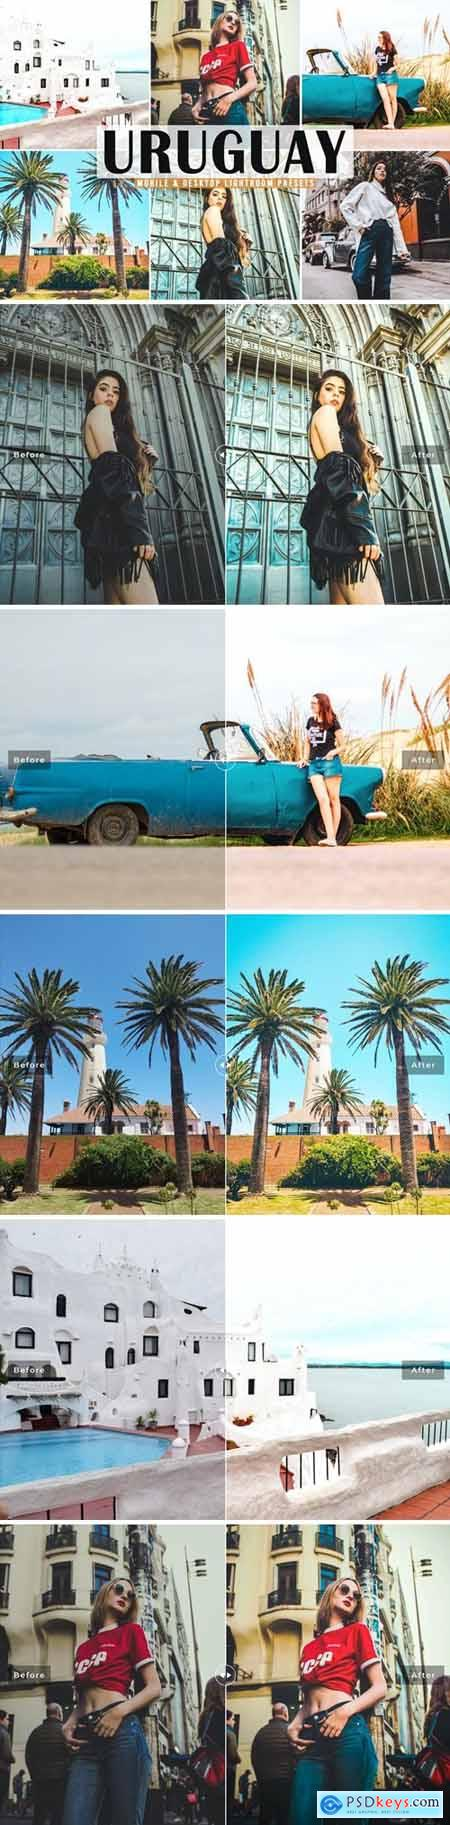 Uruguay Mobile & Desktop Lightroom Presets